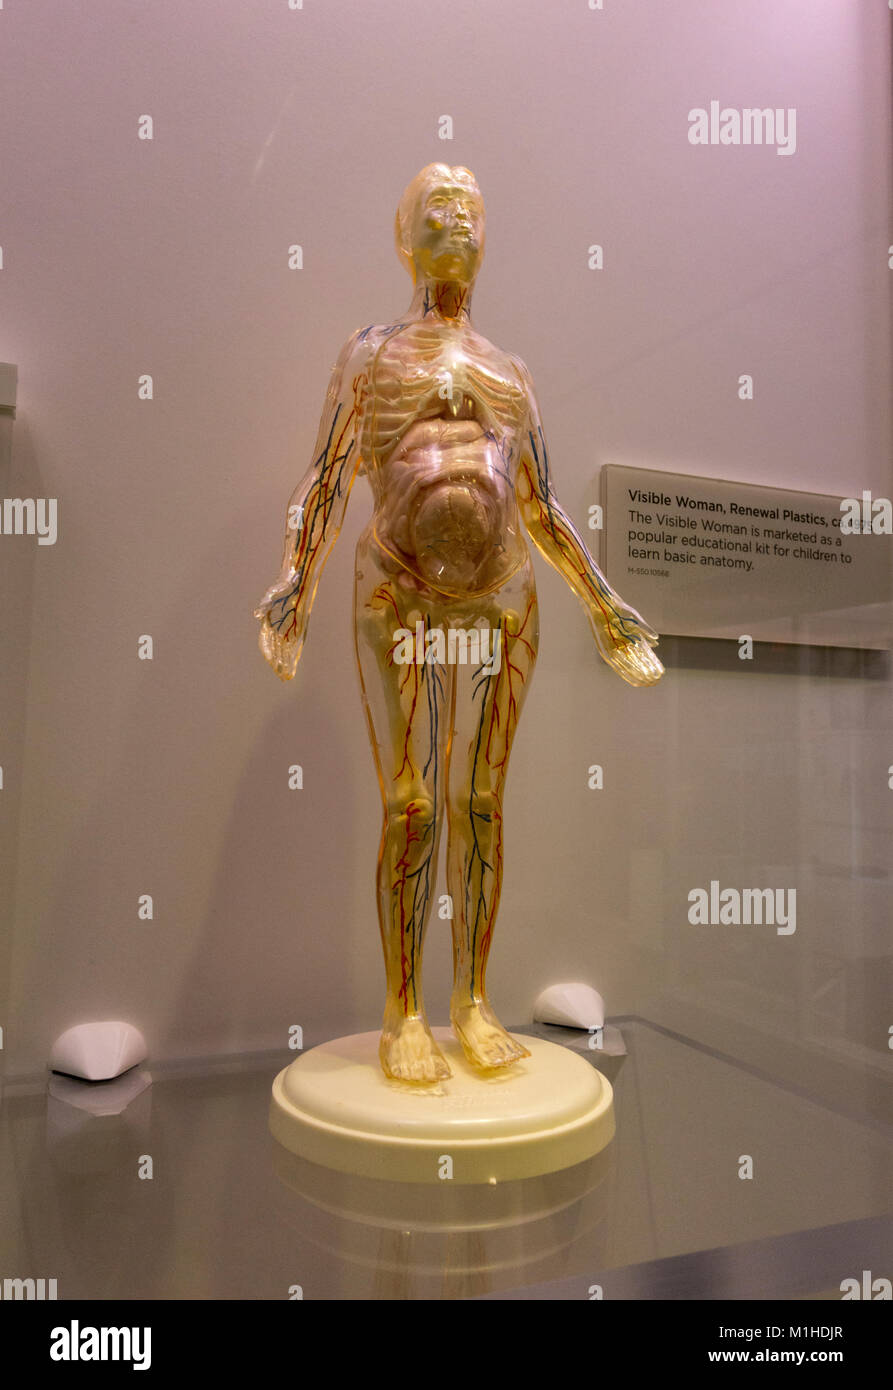 A Visible Woman anatomy model  by Renewal Plastics from 1975 on display in the National Museum of Health and Medicine, - Stock Image